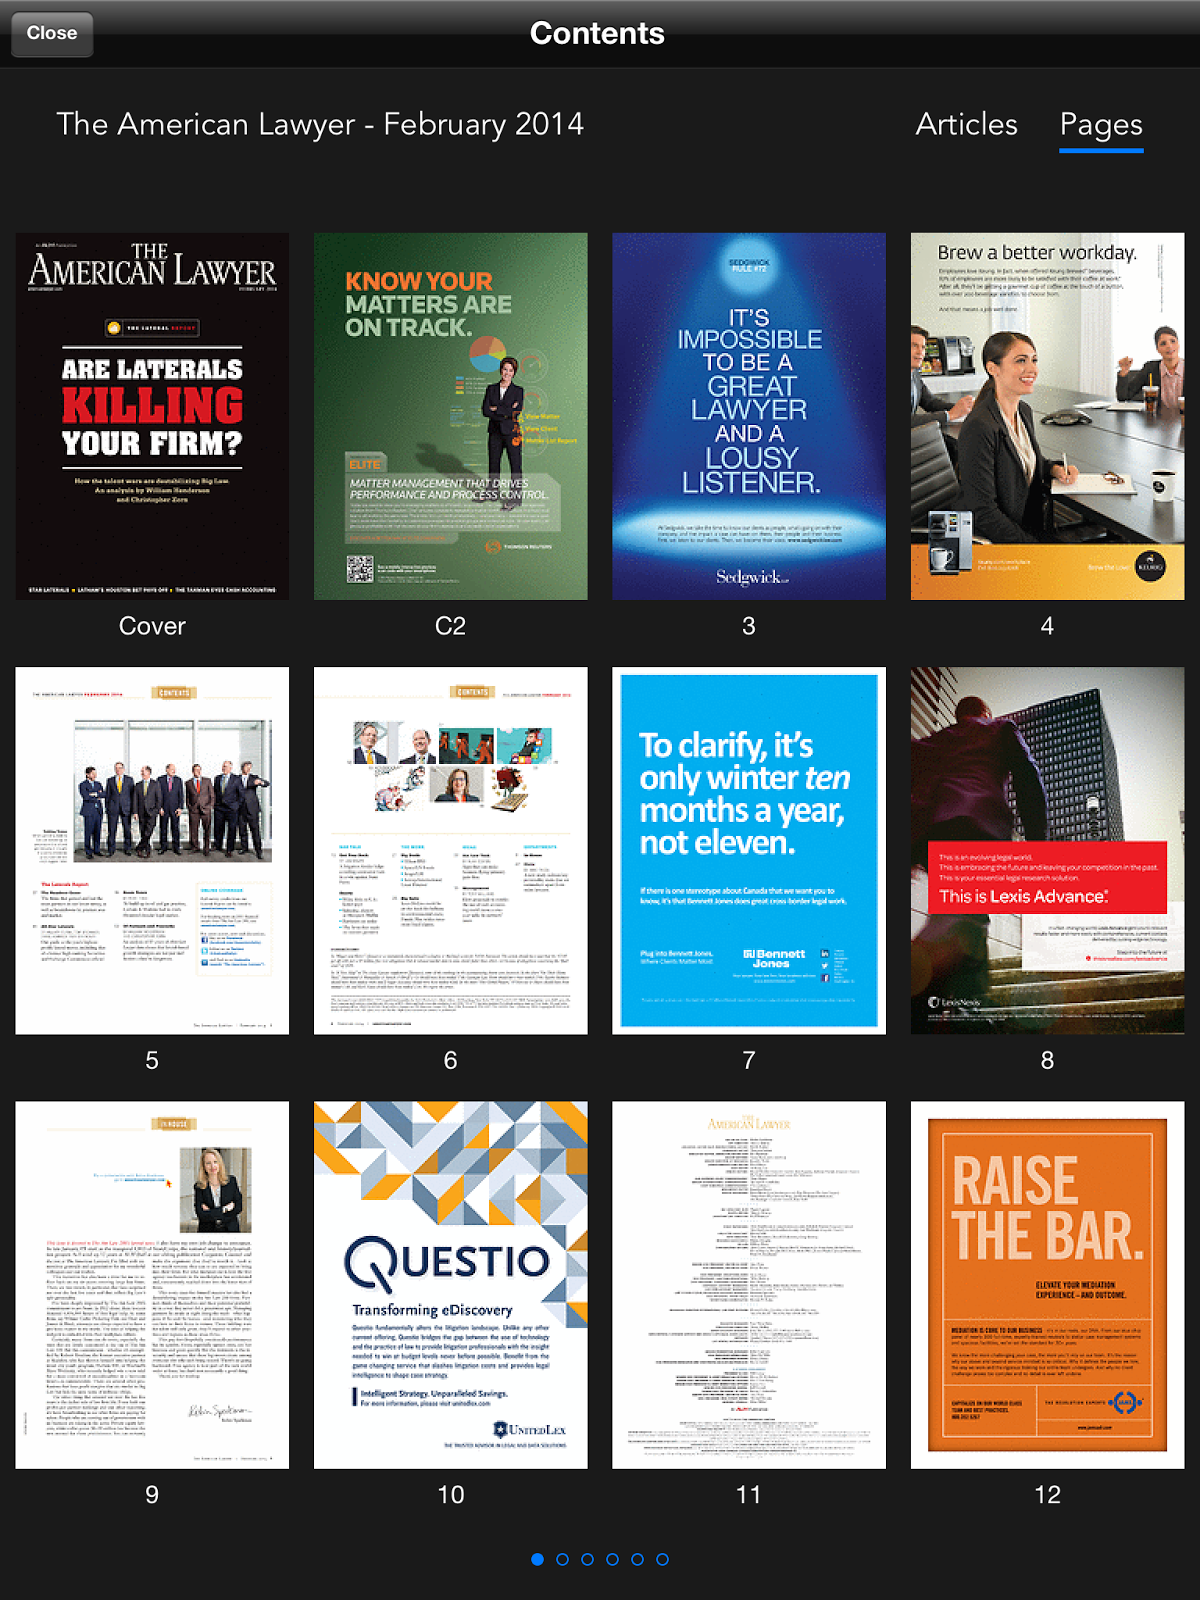 Spot-On Legal Research: Mobile Apps for Legal Research #12